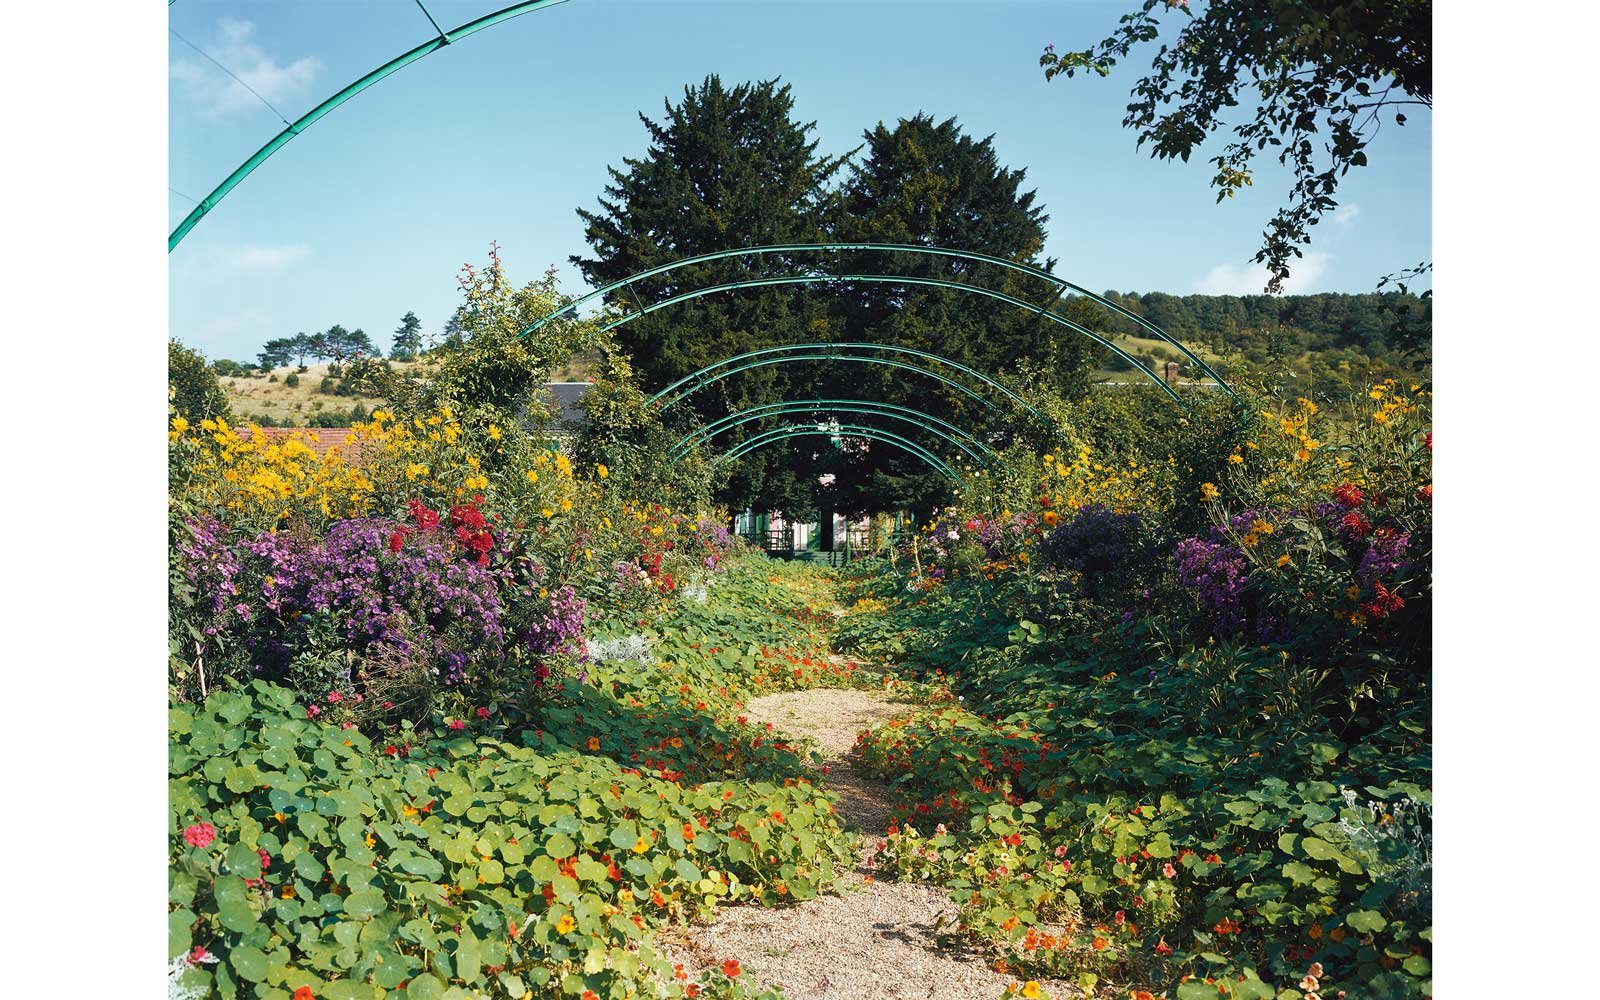 Stephen Shore, Giverny, France, 1981